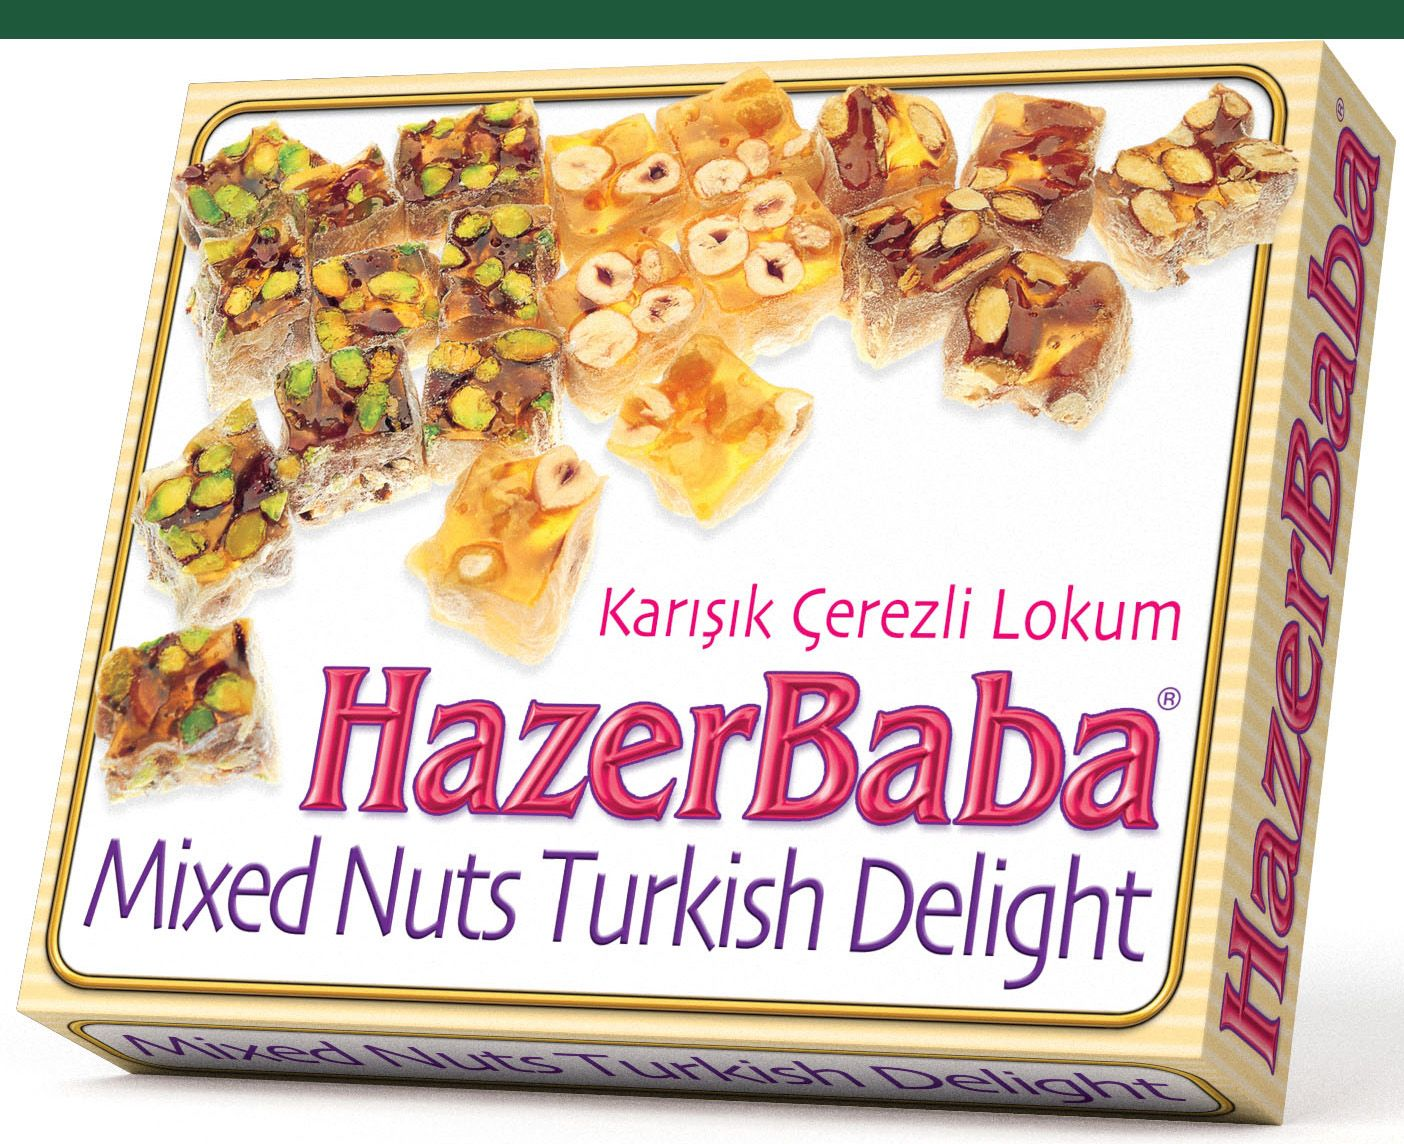 Hazer Baba Mixed Nut Turkish Delight